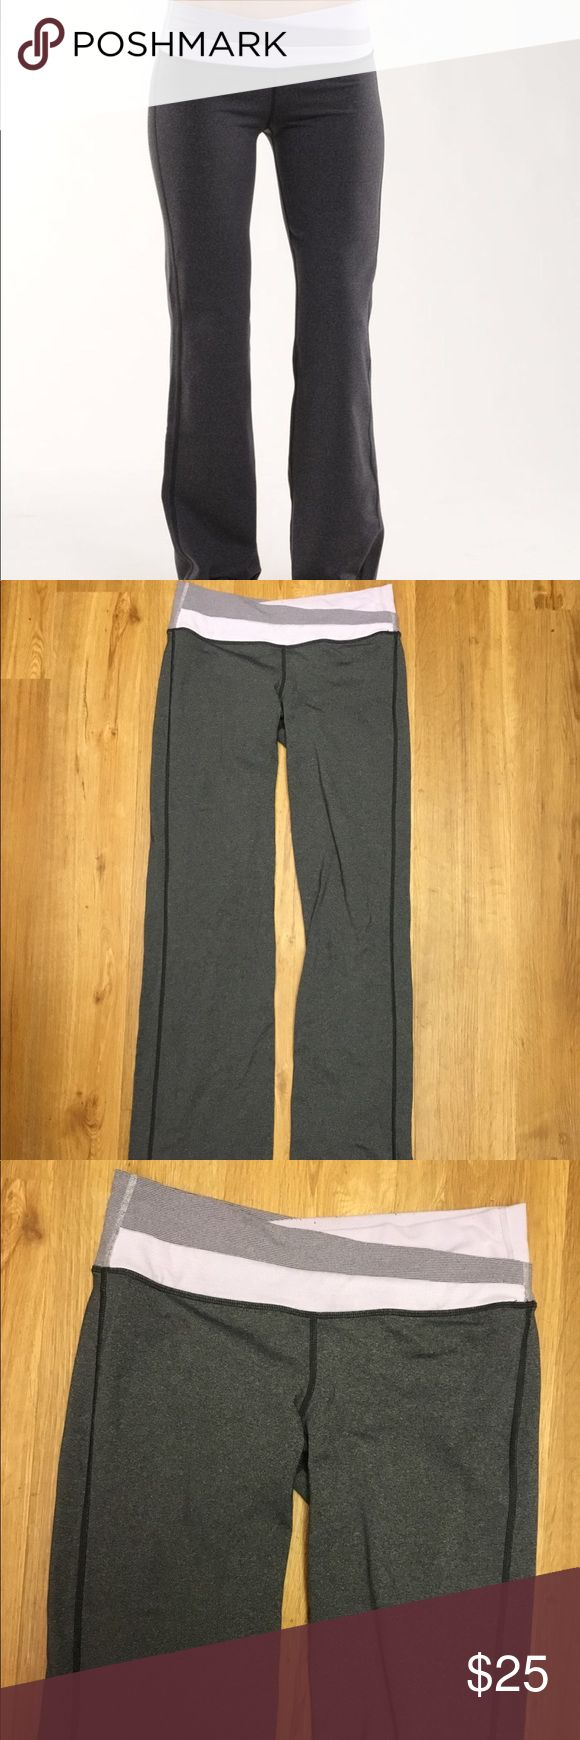 Lululemon Astro pants 8 Tall Lululemon Astro pants in preowned condition size 8 lululemon athletica Pants Straight Leg